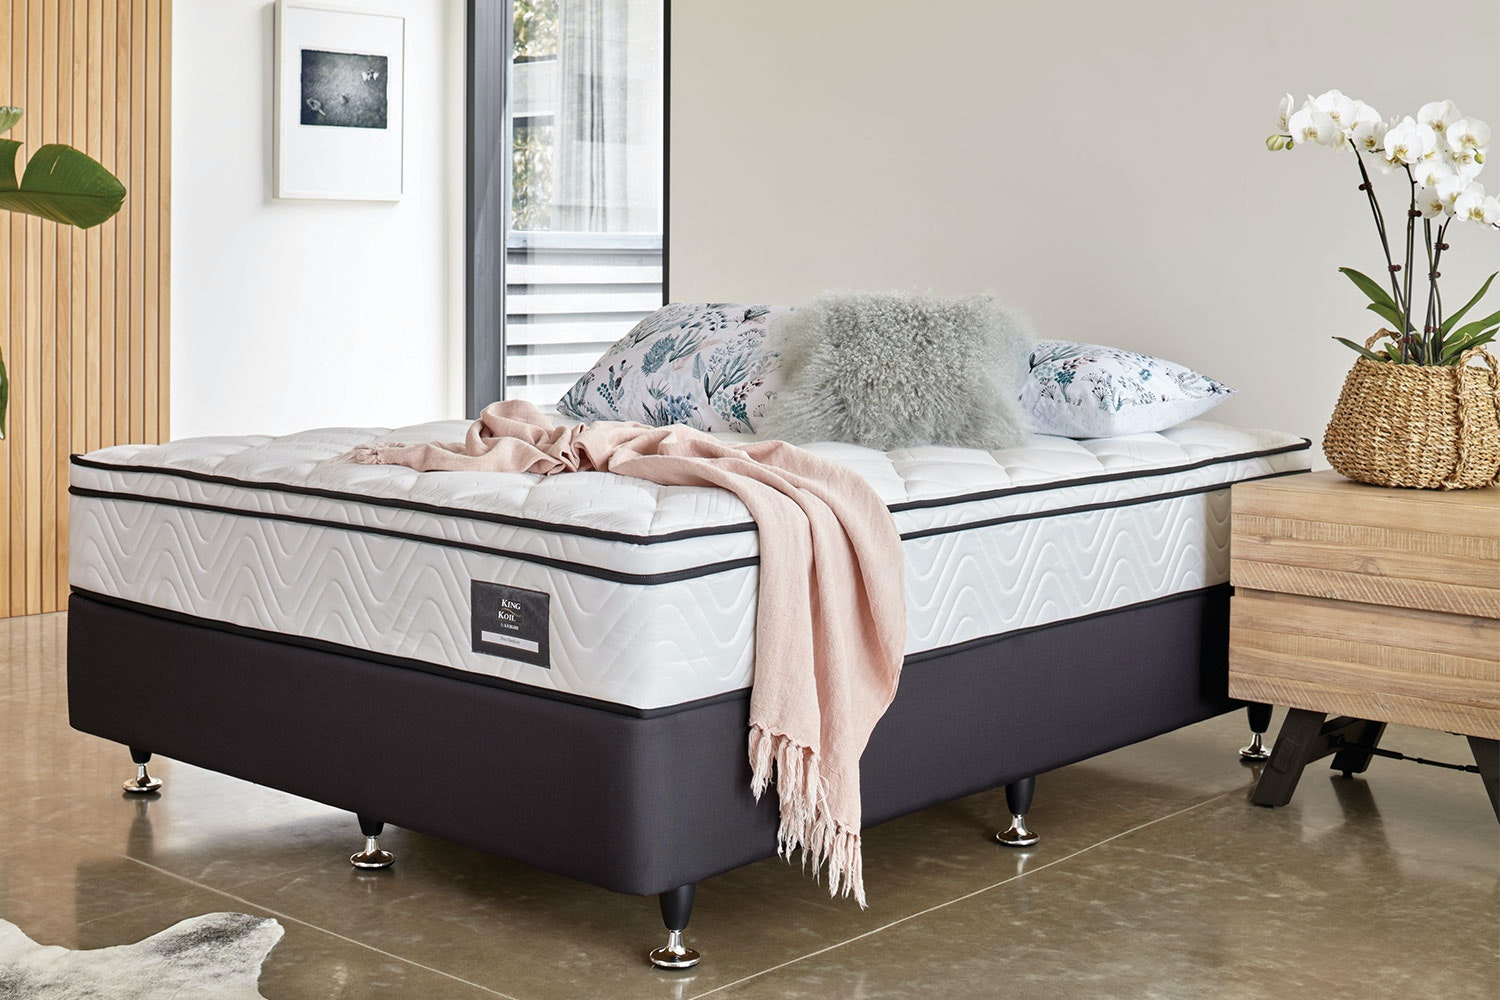 Viva Medium King Bed by King Koil